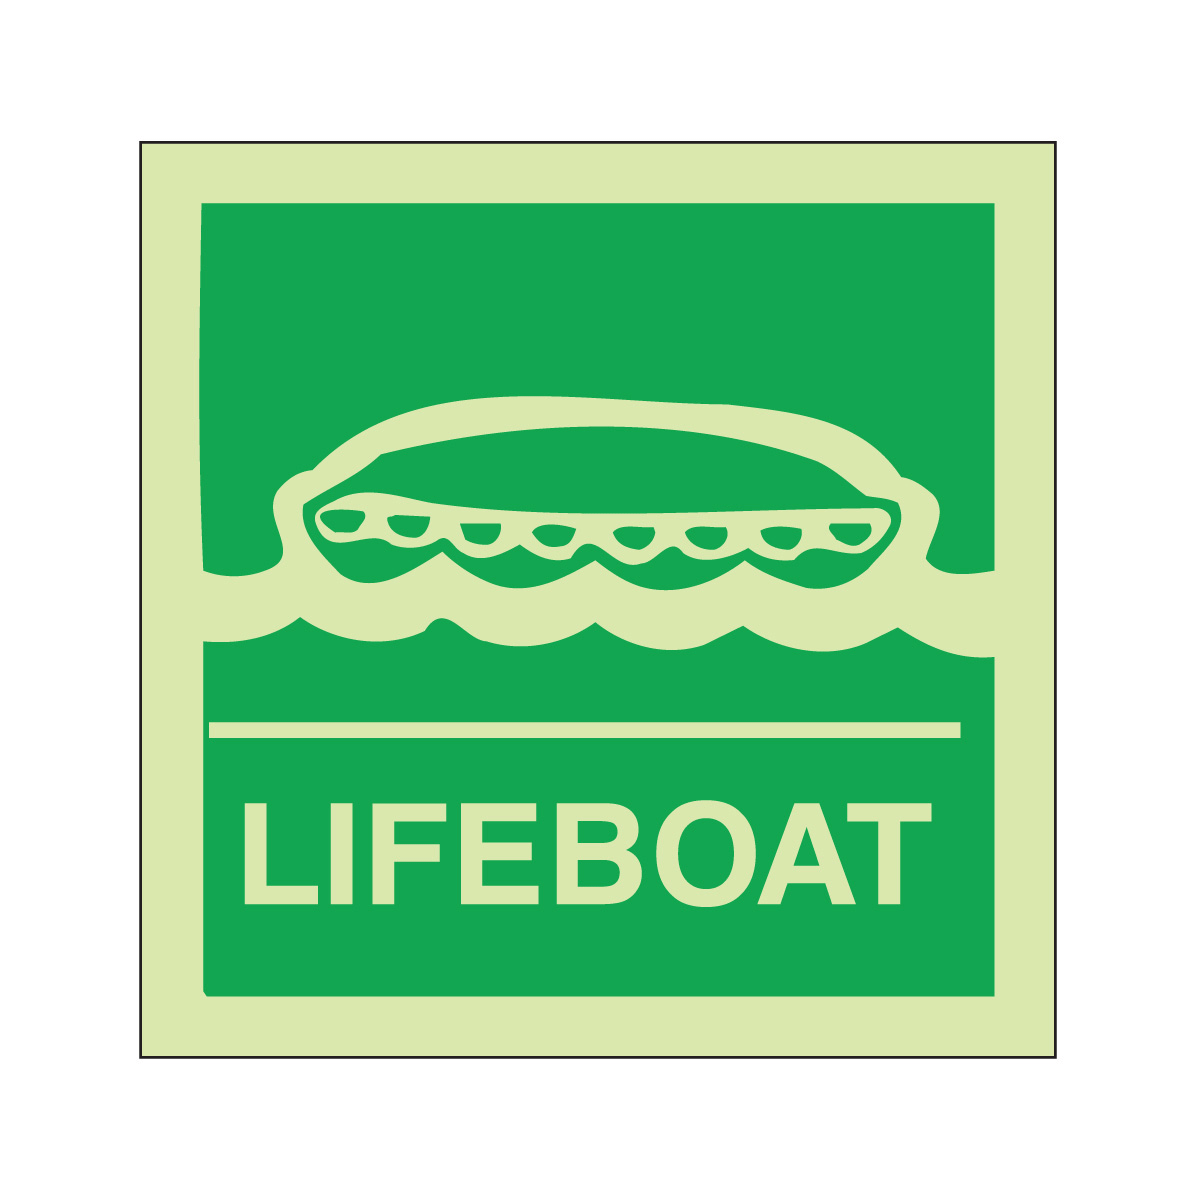 Lifeboat Safety Sign Photoluminescent Imo Sign From